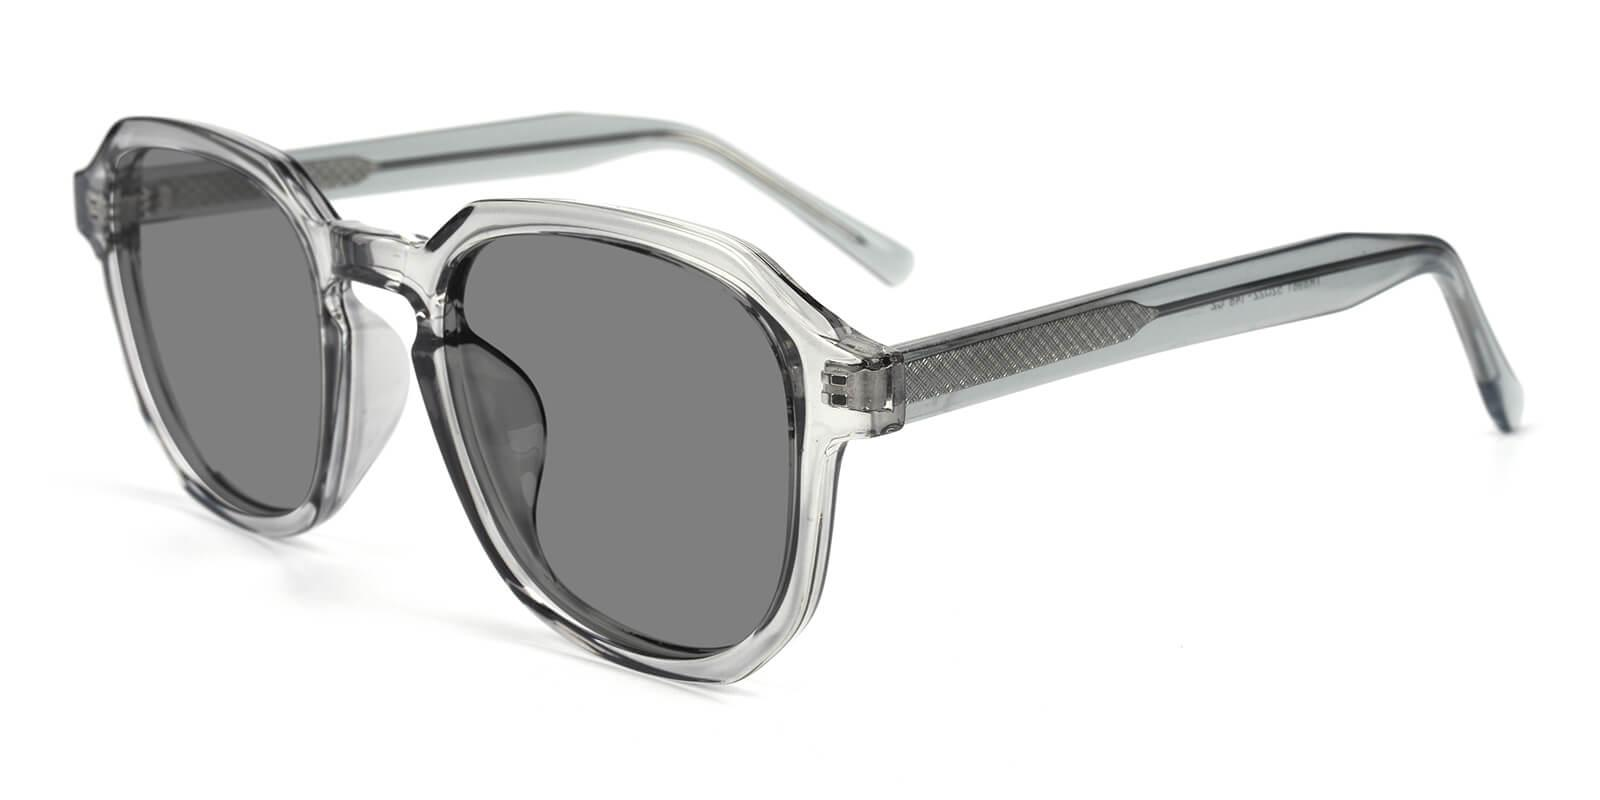 Polly-Gray-Square-Acetate-Eyeglasses-additional1